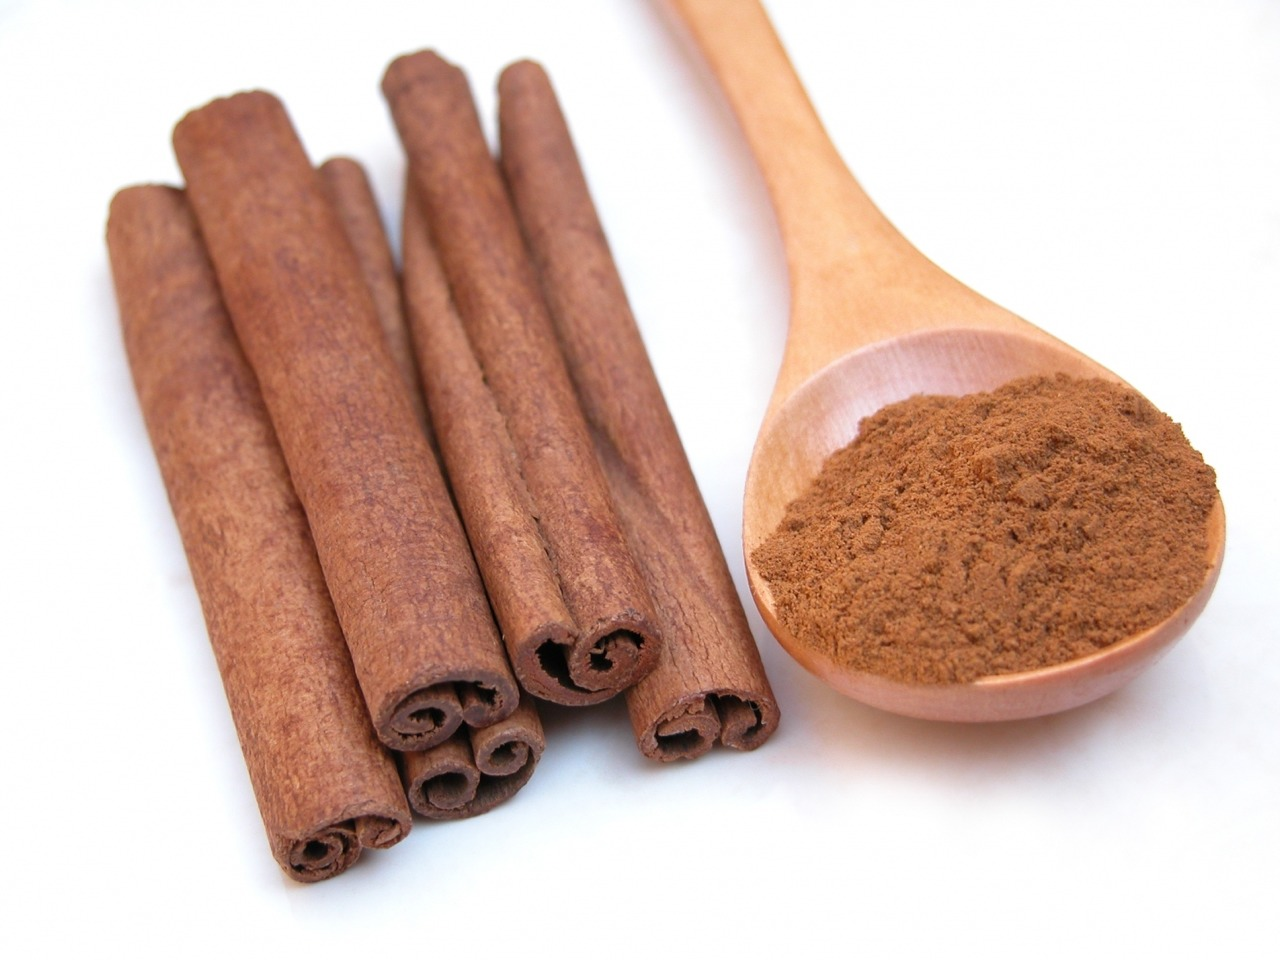 You need 1 TBL spoon of cinnamon or if your using cinnamon sticks all you would need is 1-2 depending on your preference.